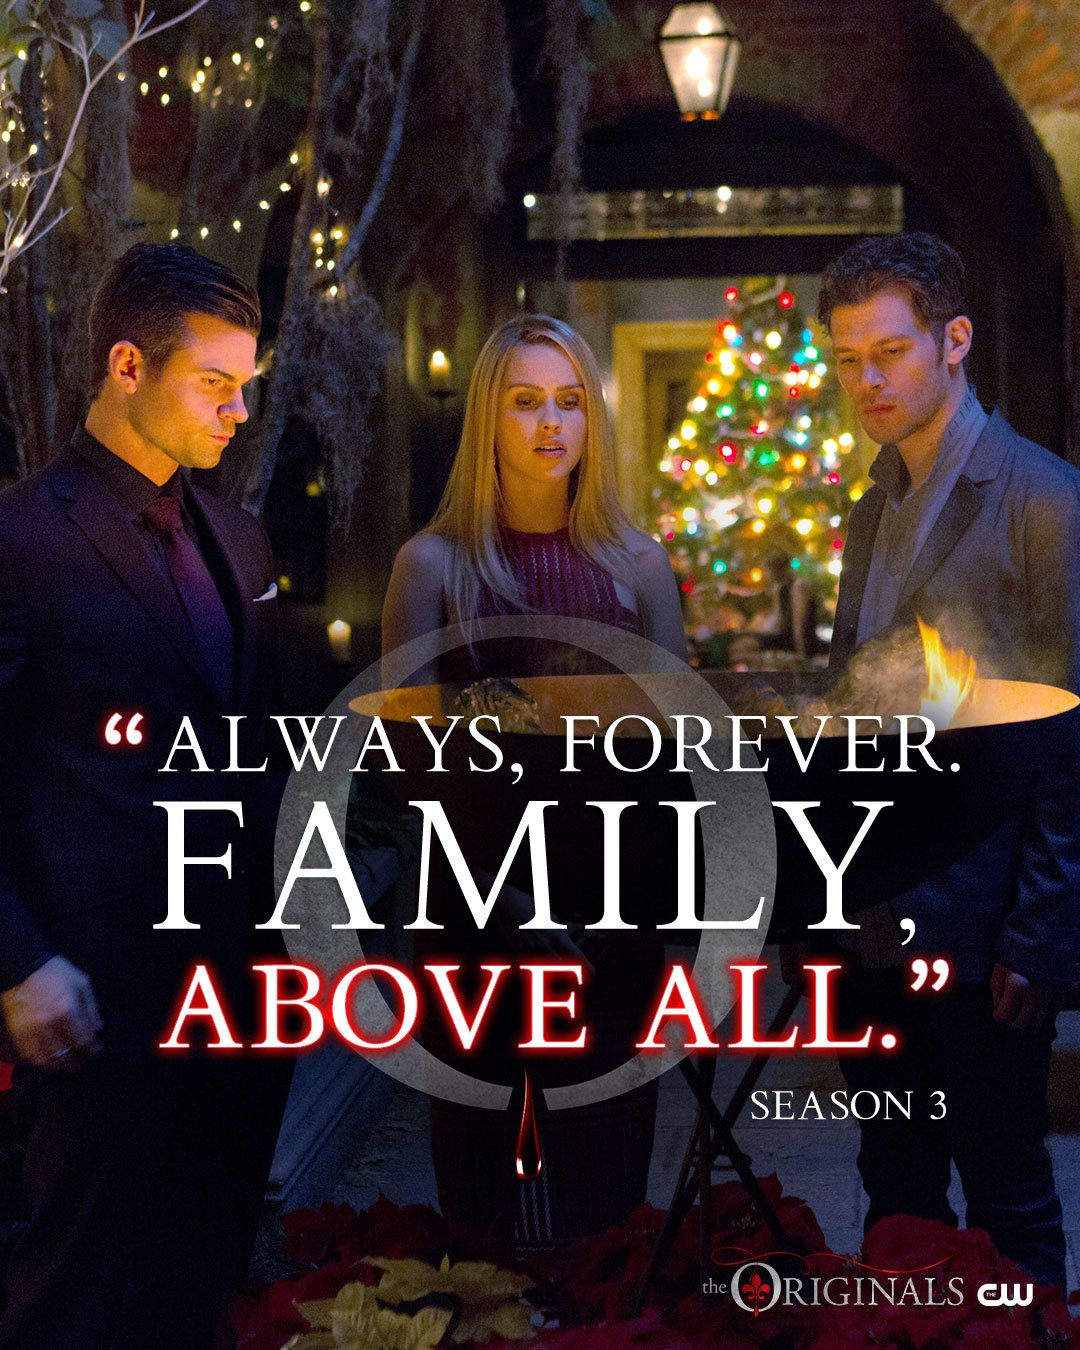 There's nothing more important than family. The final season begins TOMORROW at 9/8c on The CW. #TheOriginals https://t.co/092NyAsUJg